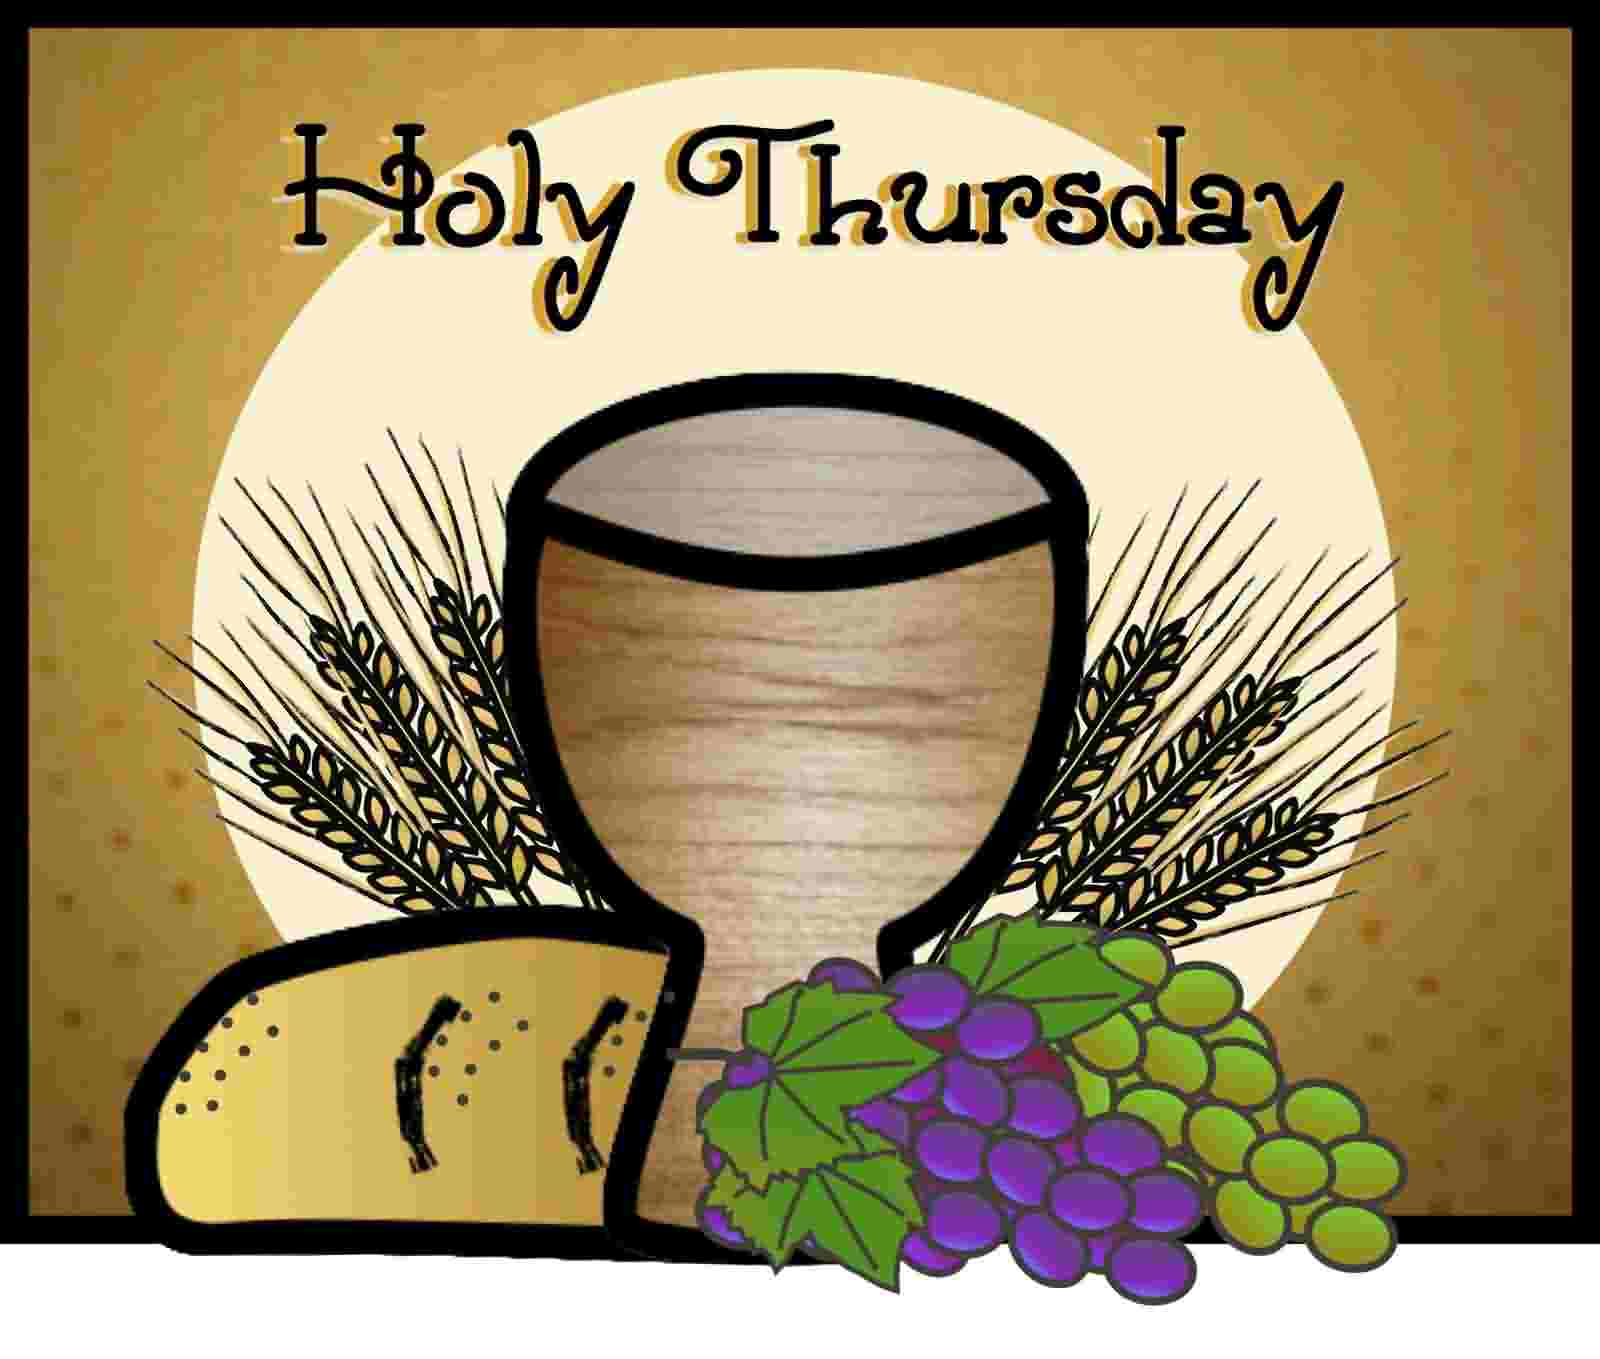 6-Holy Thursday Wishes